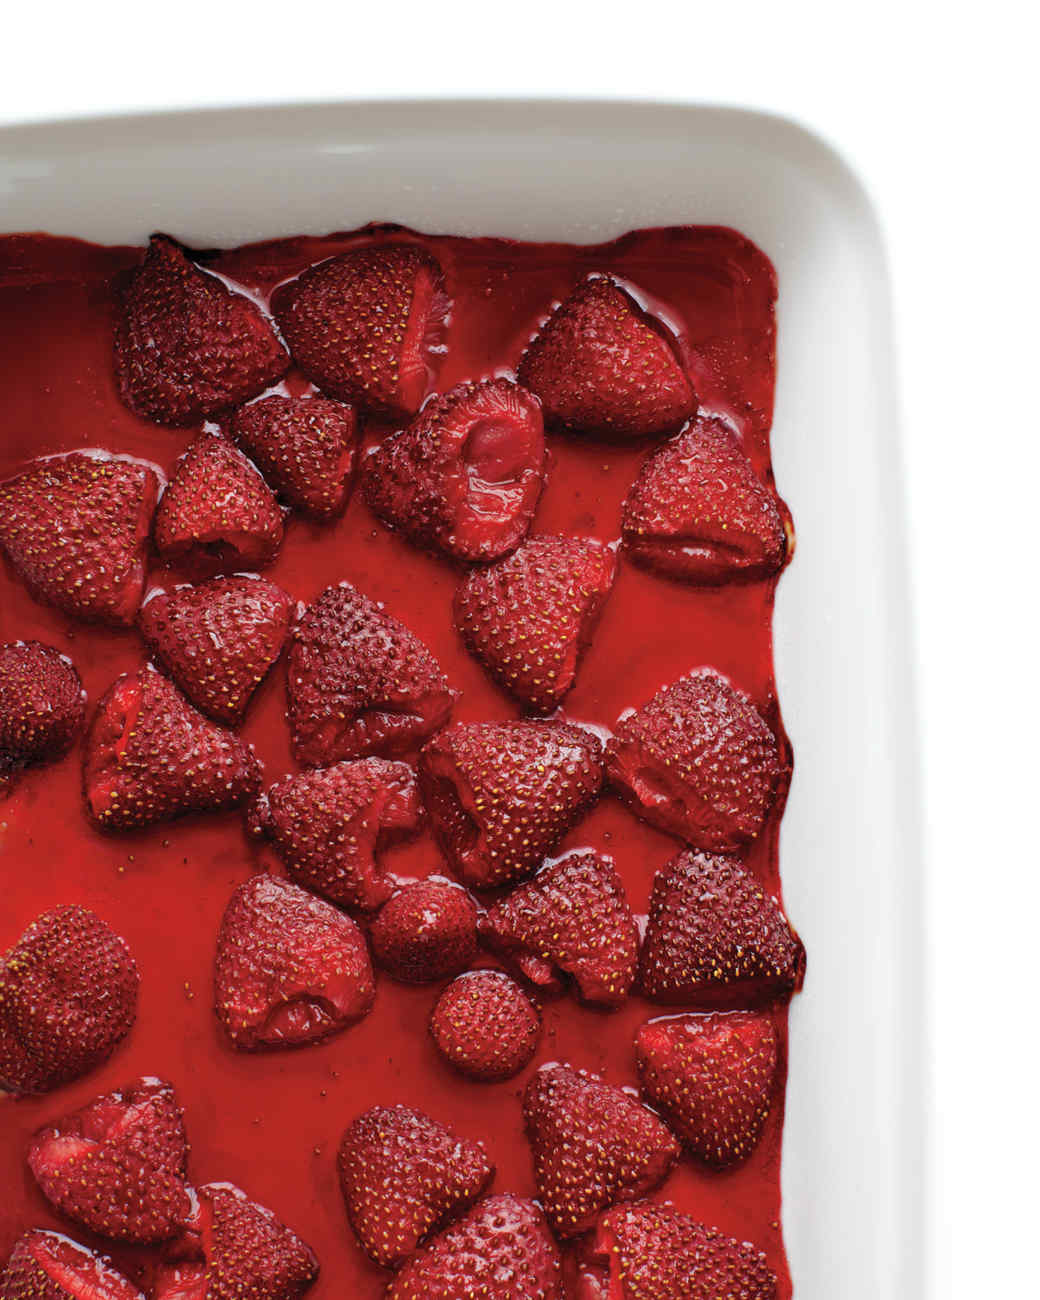 roasted-strawberries-mld108490.jpg